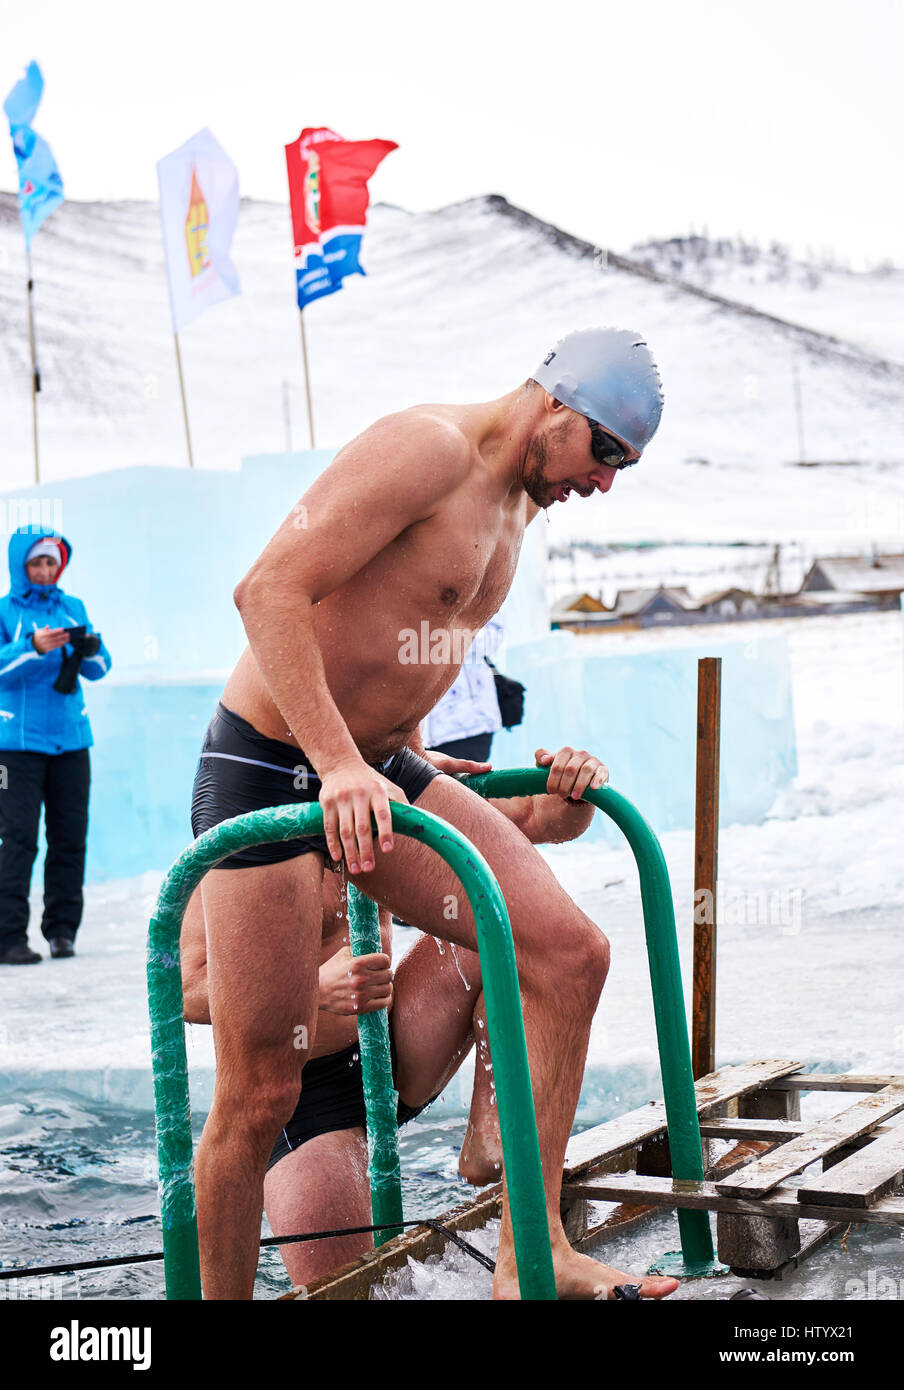 SAHYURTA, IRKUTSK REGION, RUSSIA - March 11.2017: Cup of Baikal. Winter Swimming Competitions. Swimmer after finish. - Stock Image